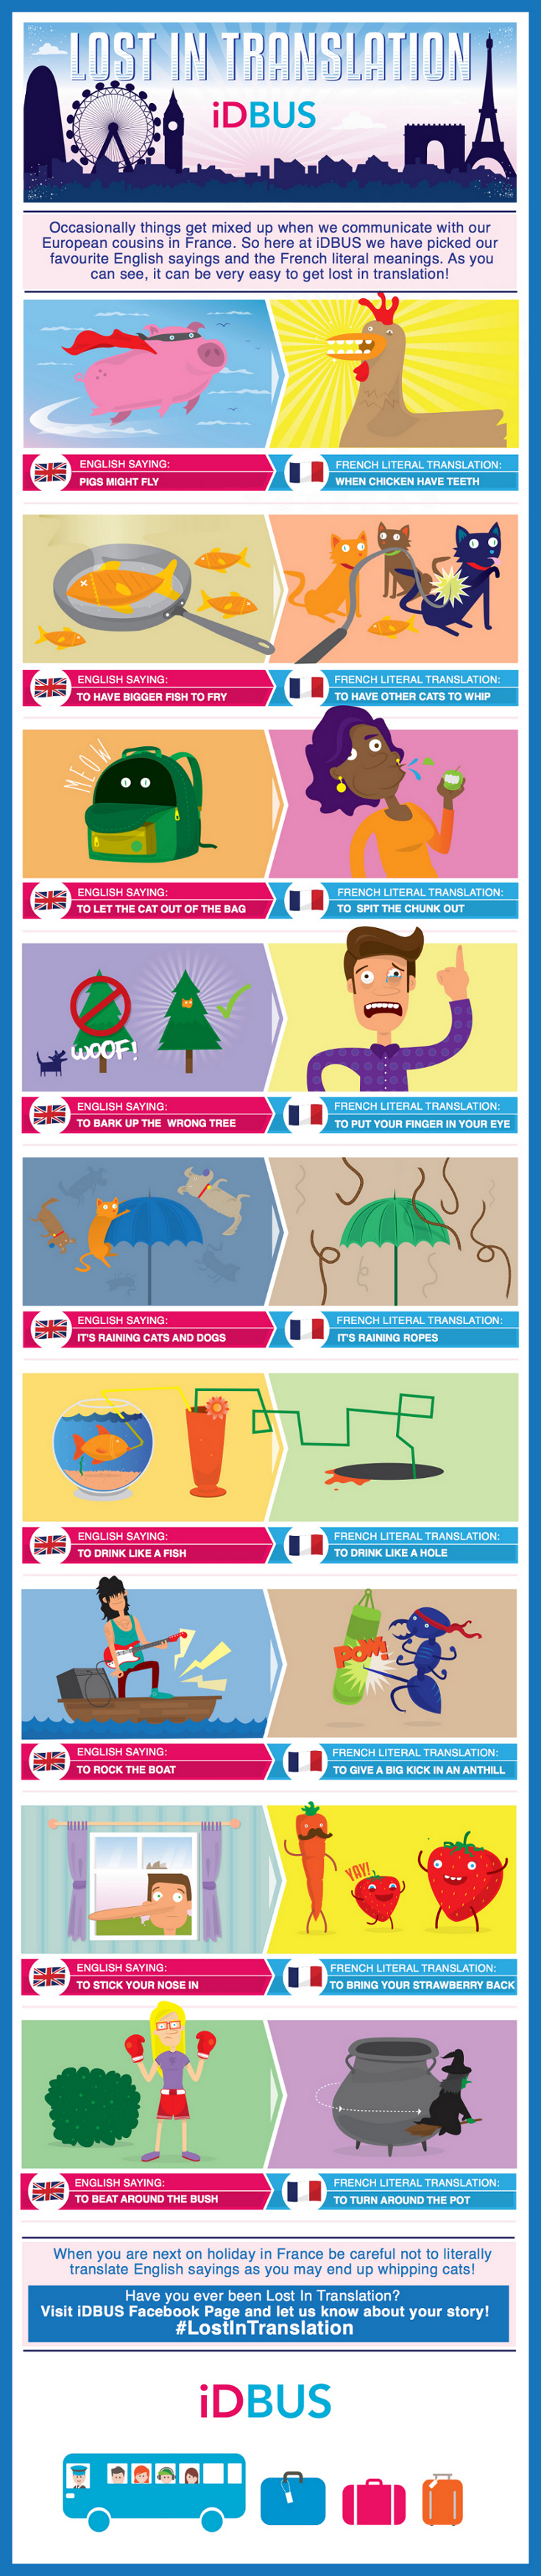 English-French Funny Translation Mistakes Infographic by iDBUS